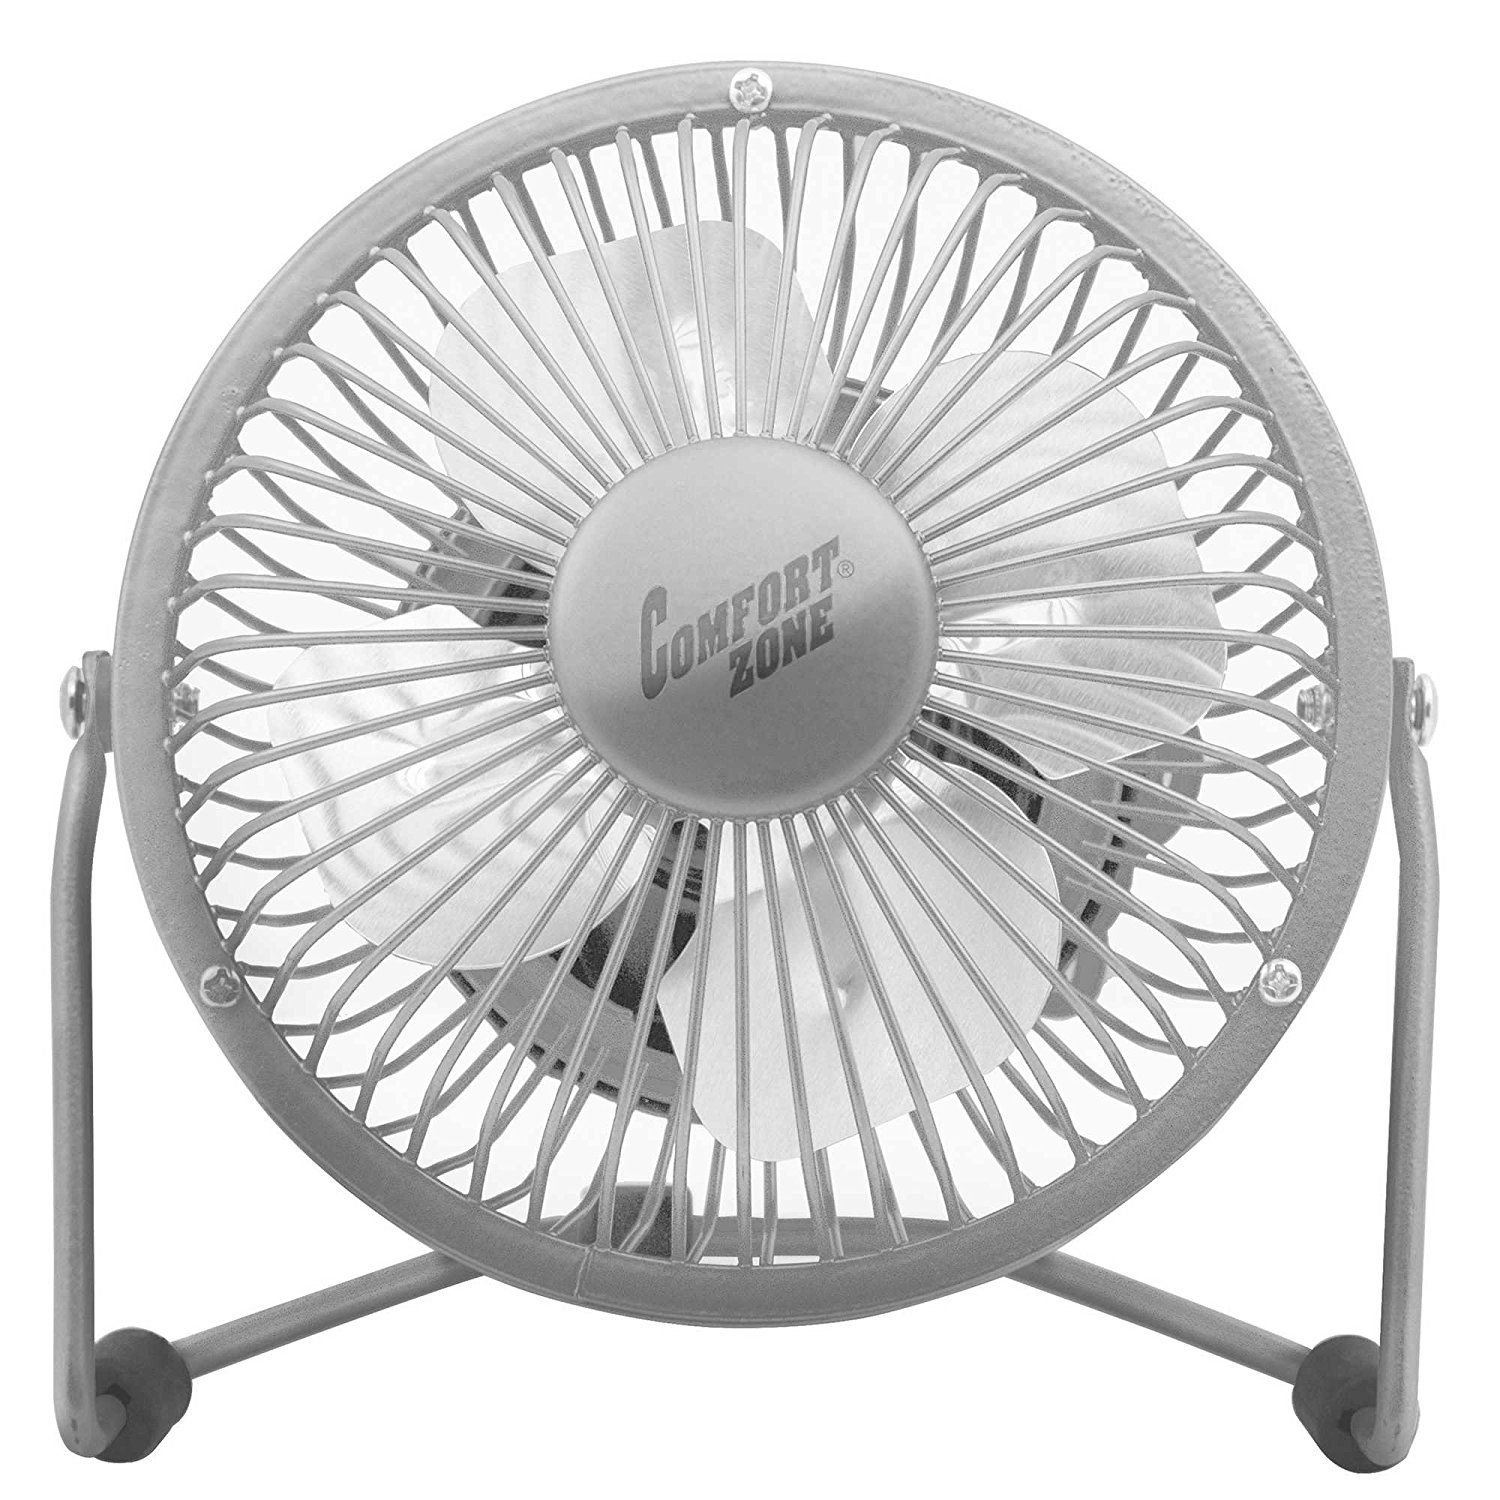 360-Degree Adjustable Tilt 4-Inch Cradle High Velocity Dual Powered Fan in Chrome, 4 Cradle Fan allows you to stay cool while working at your computer Plug this fan into any powered..,Ship from US